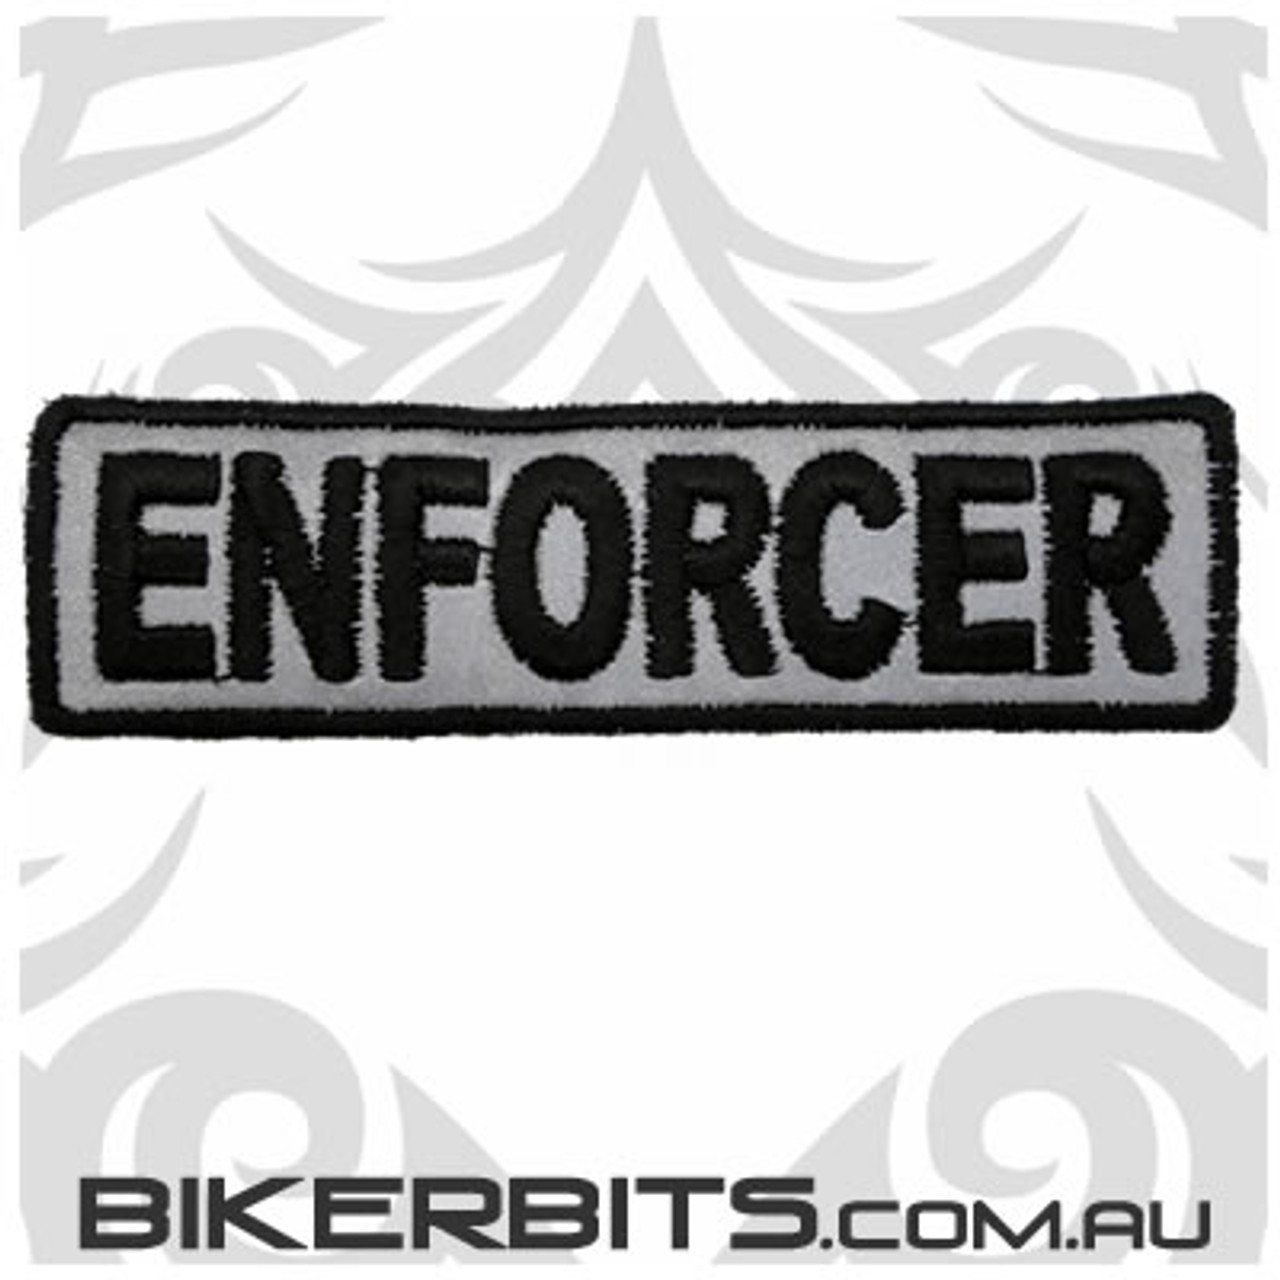 Patch - Biker Club ENFORCER - Reflective